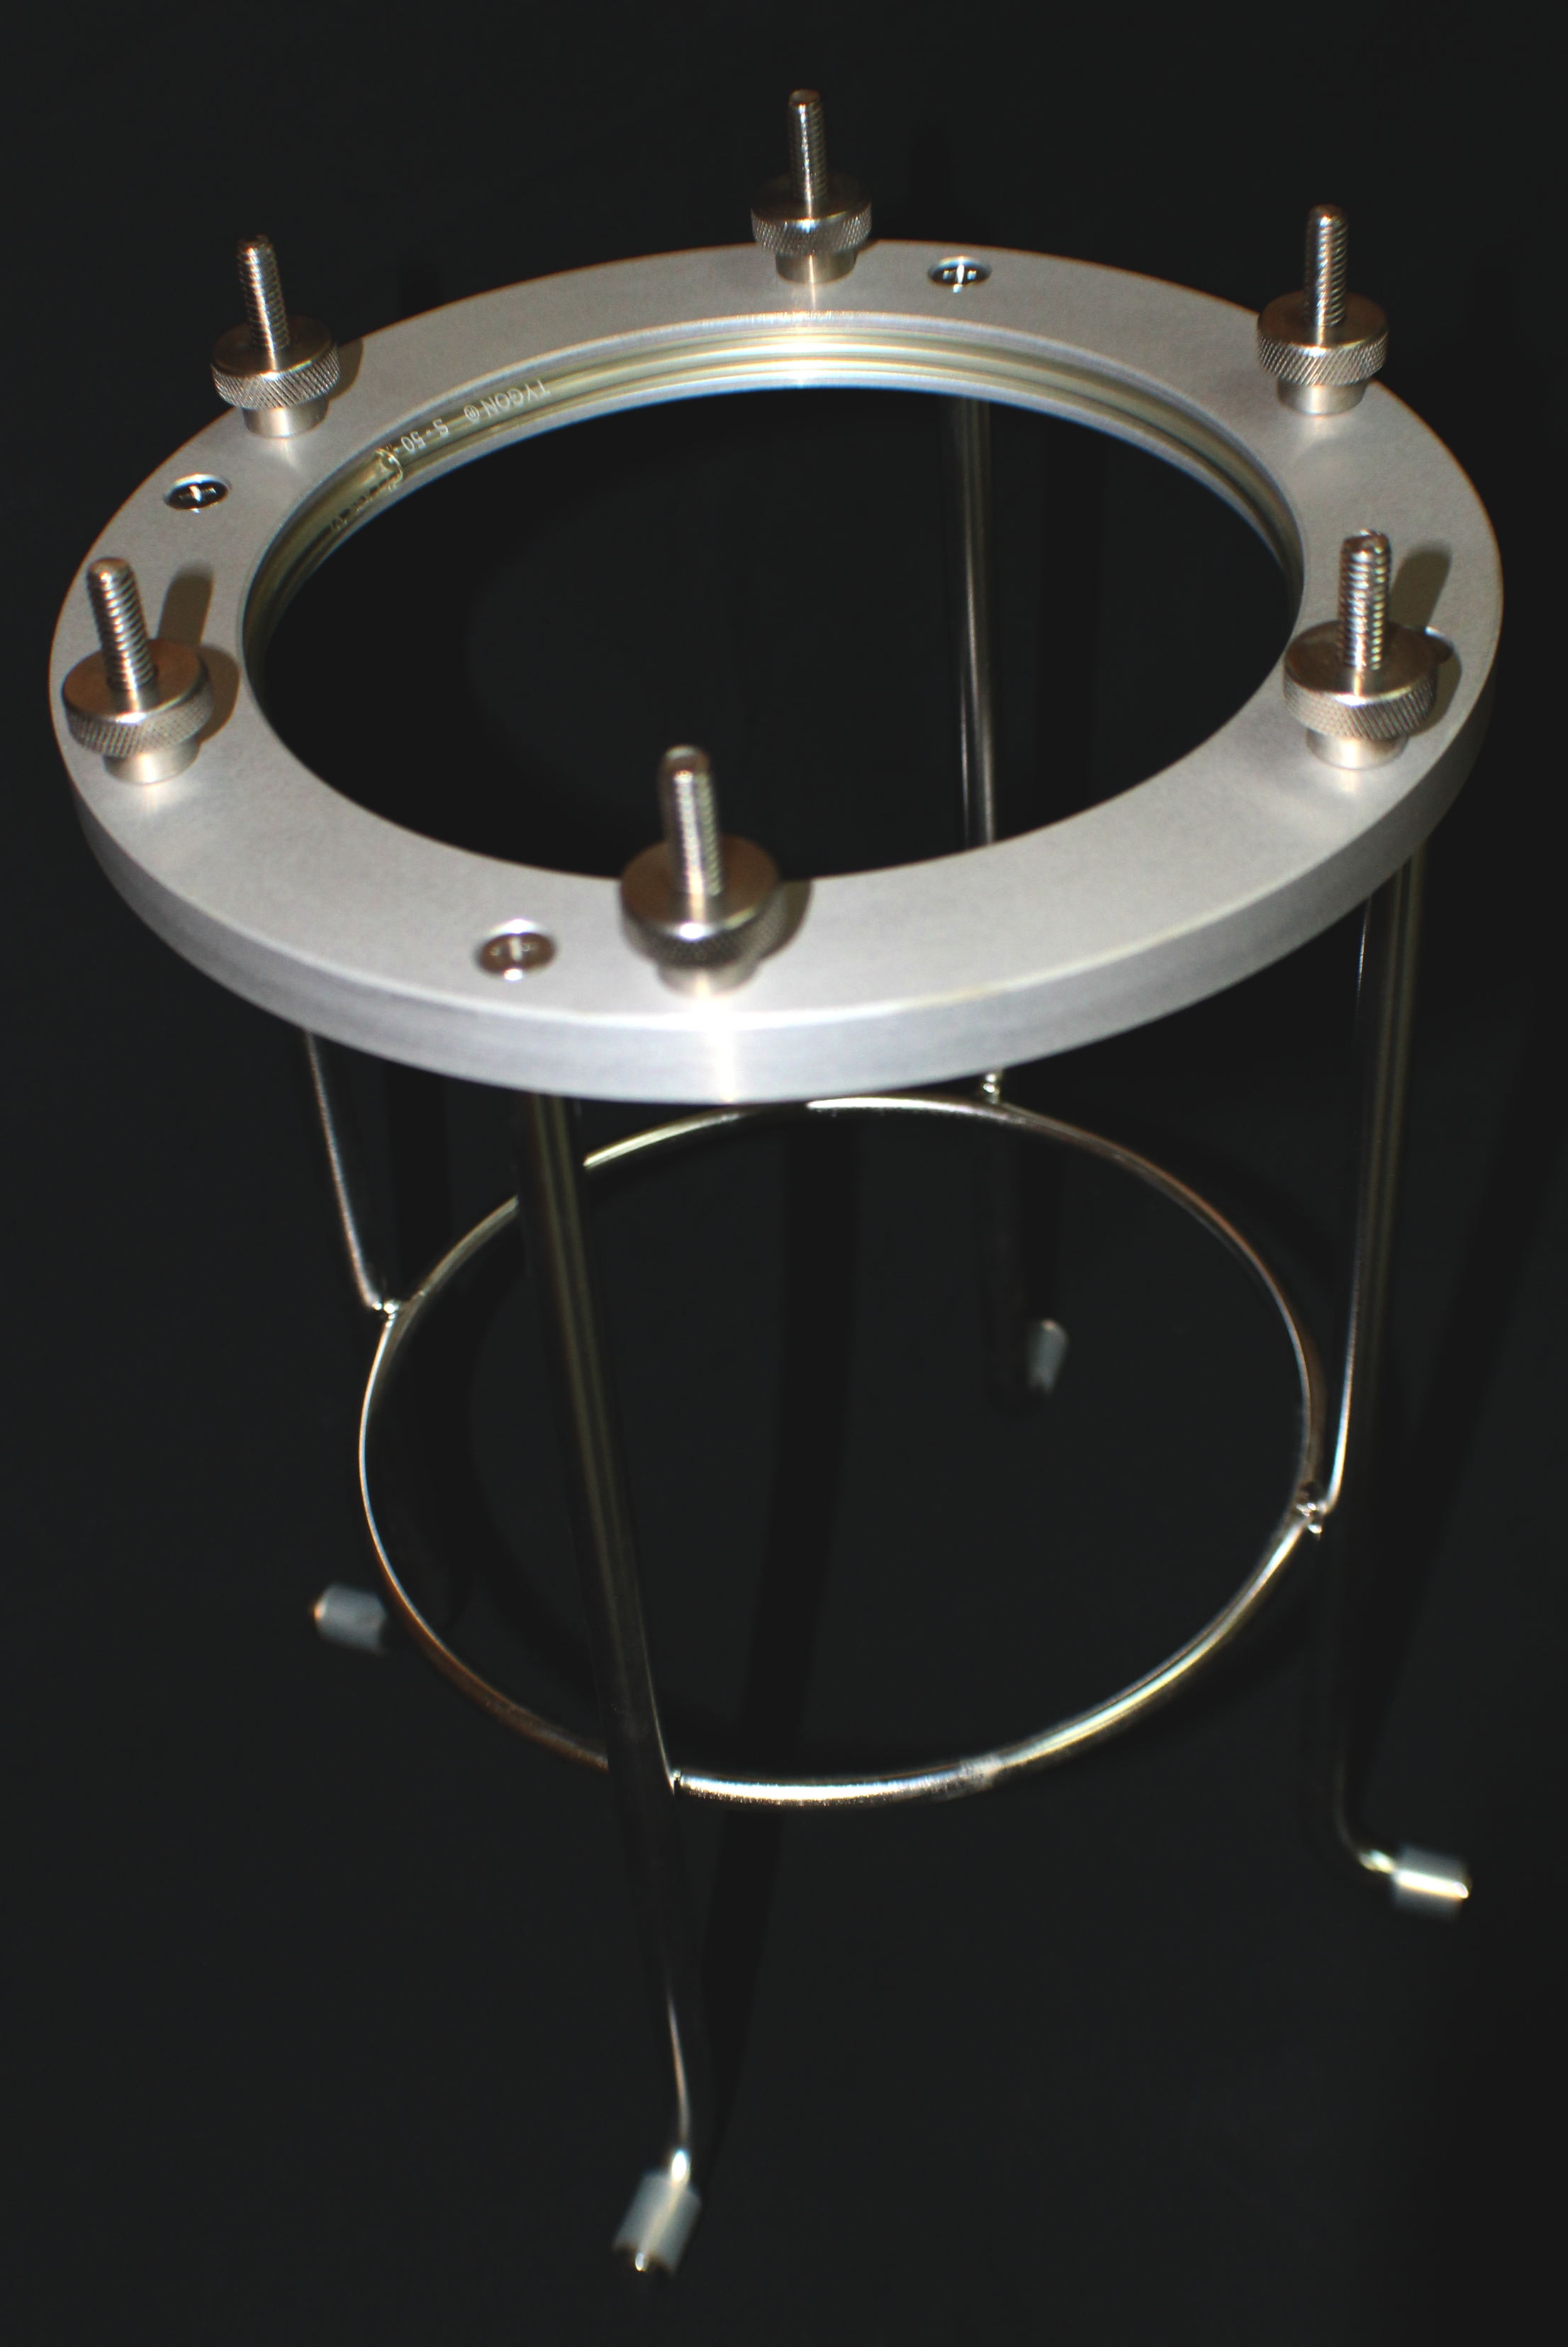 bellcoglass/Bioreactor Stand w/ 6 Bolts/Search for:/7669-00003